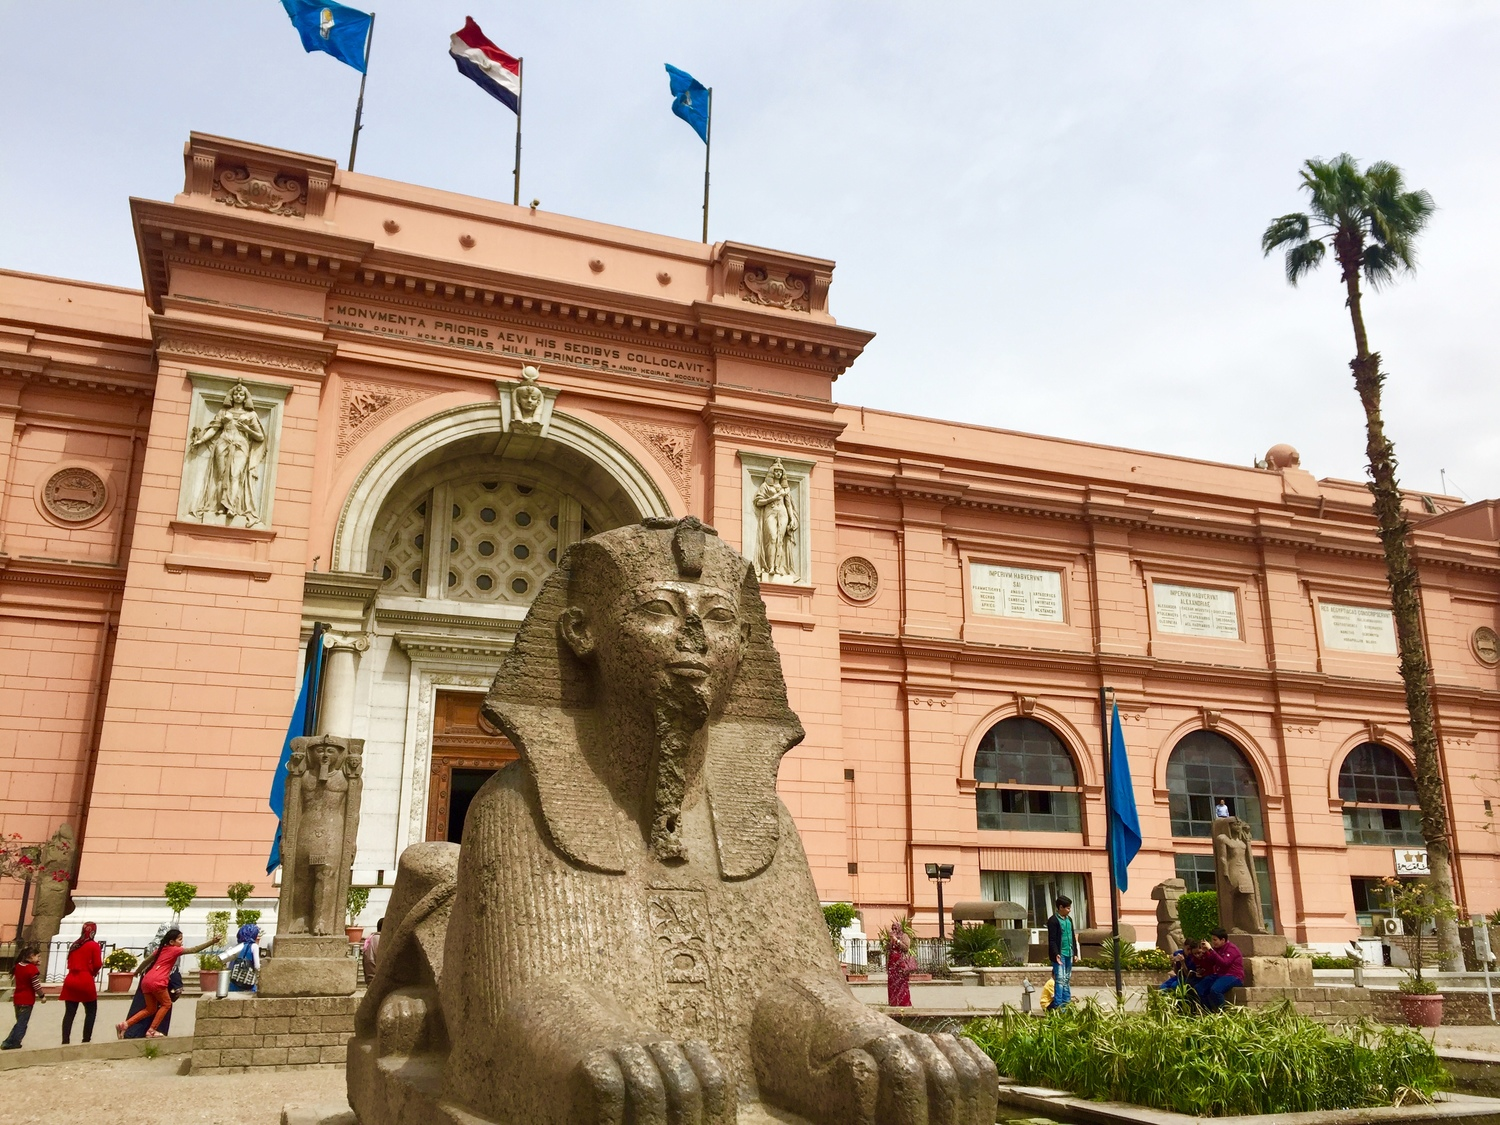 EGPYTIAN MUSUEM - Home to an extensive collection of ancient Egyptian antiquities.